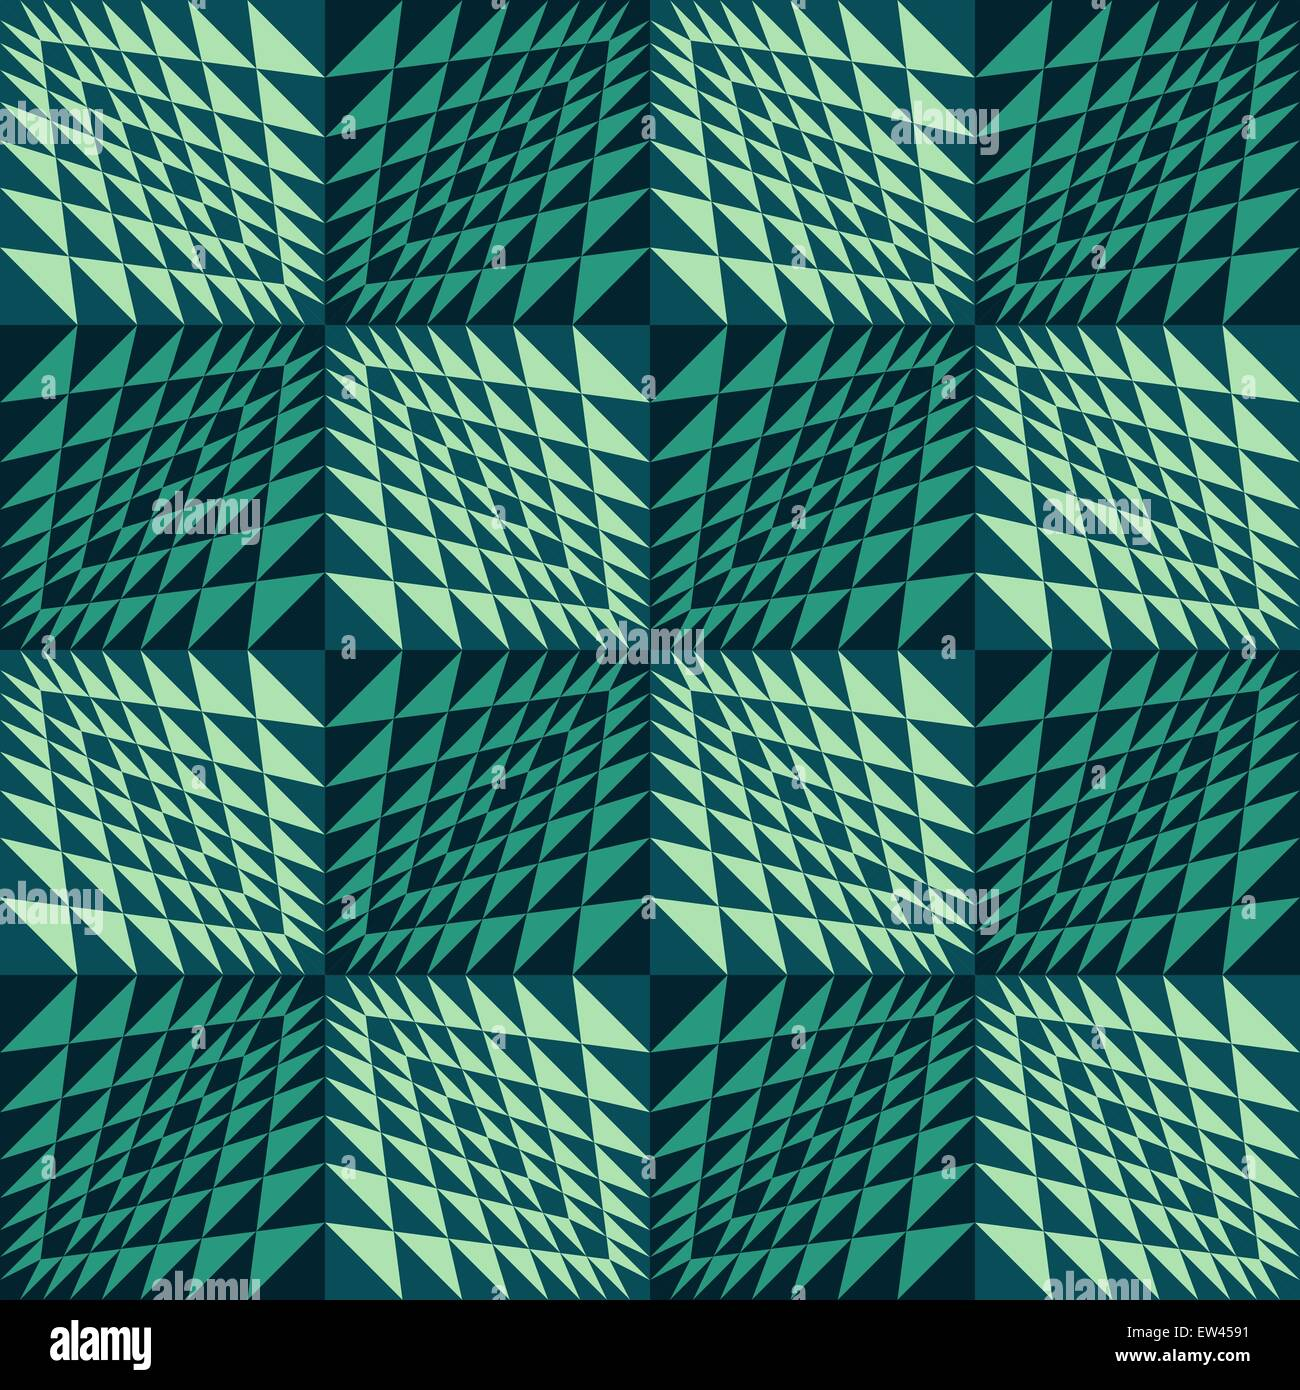 Abstract geometric background. Seamless wavy pattern. - Stock Vector